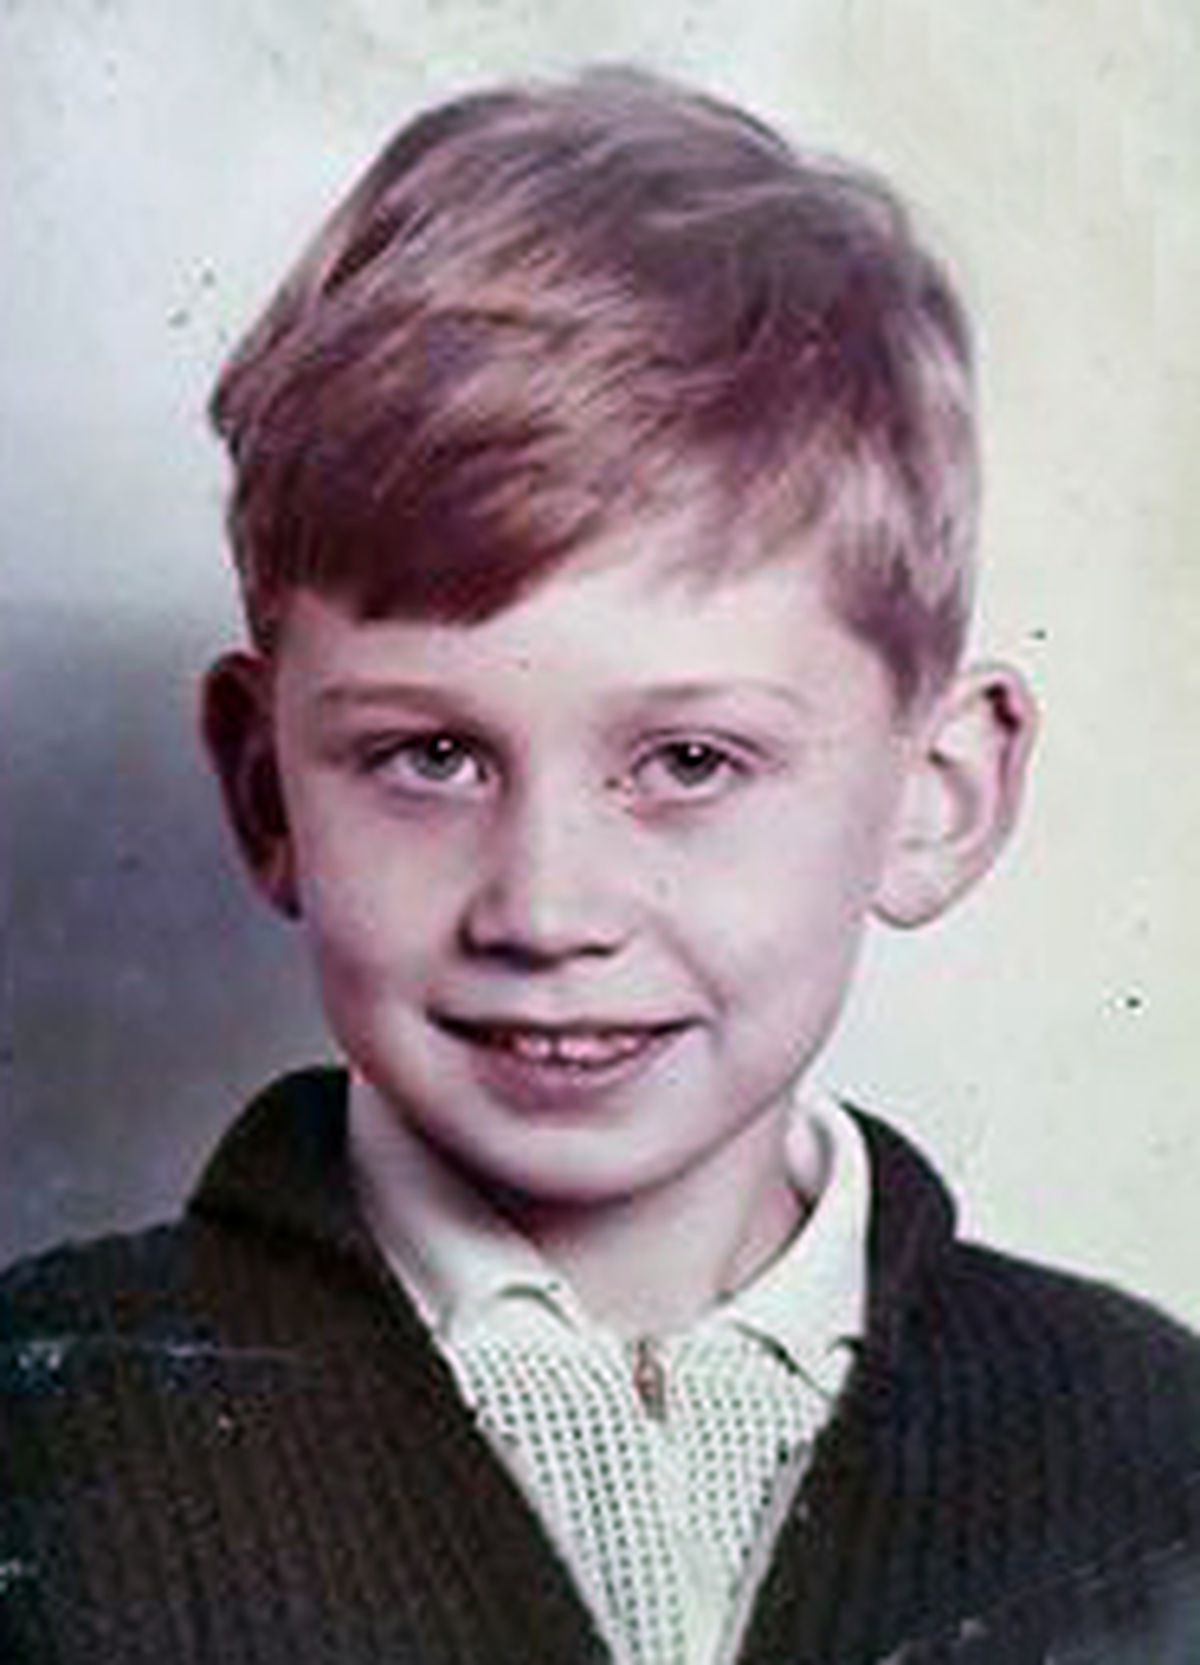 Pete Edwards as a pupil at the school in late 1967 or early 1968.